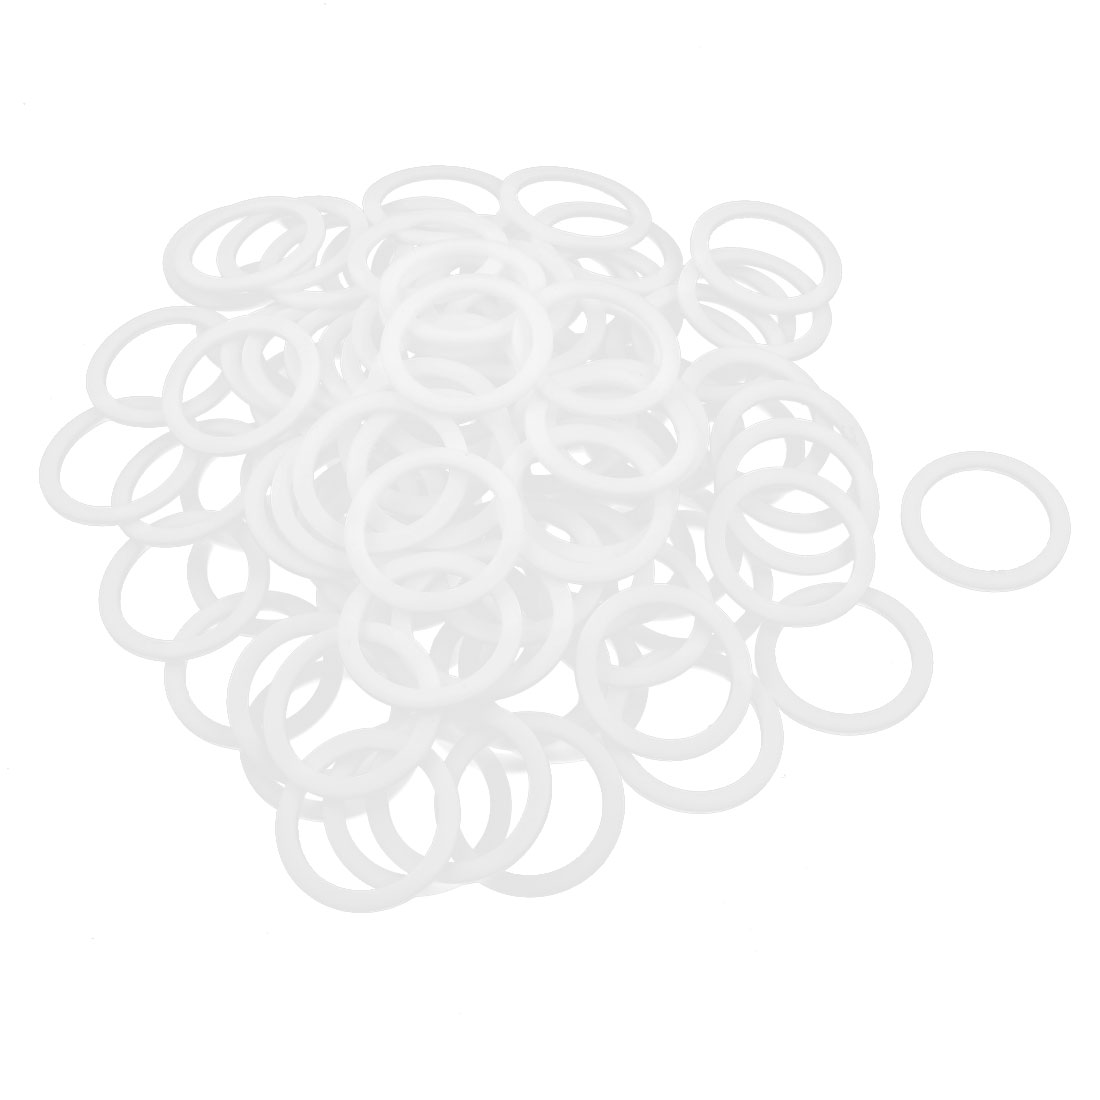 100pcs 39mm x 30mm x 2mm PTFE Flange Gasket Sanitary Pipe Fitting Ferrules White